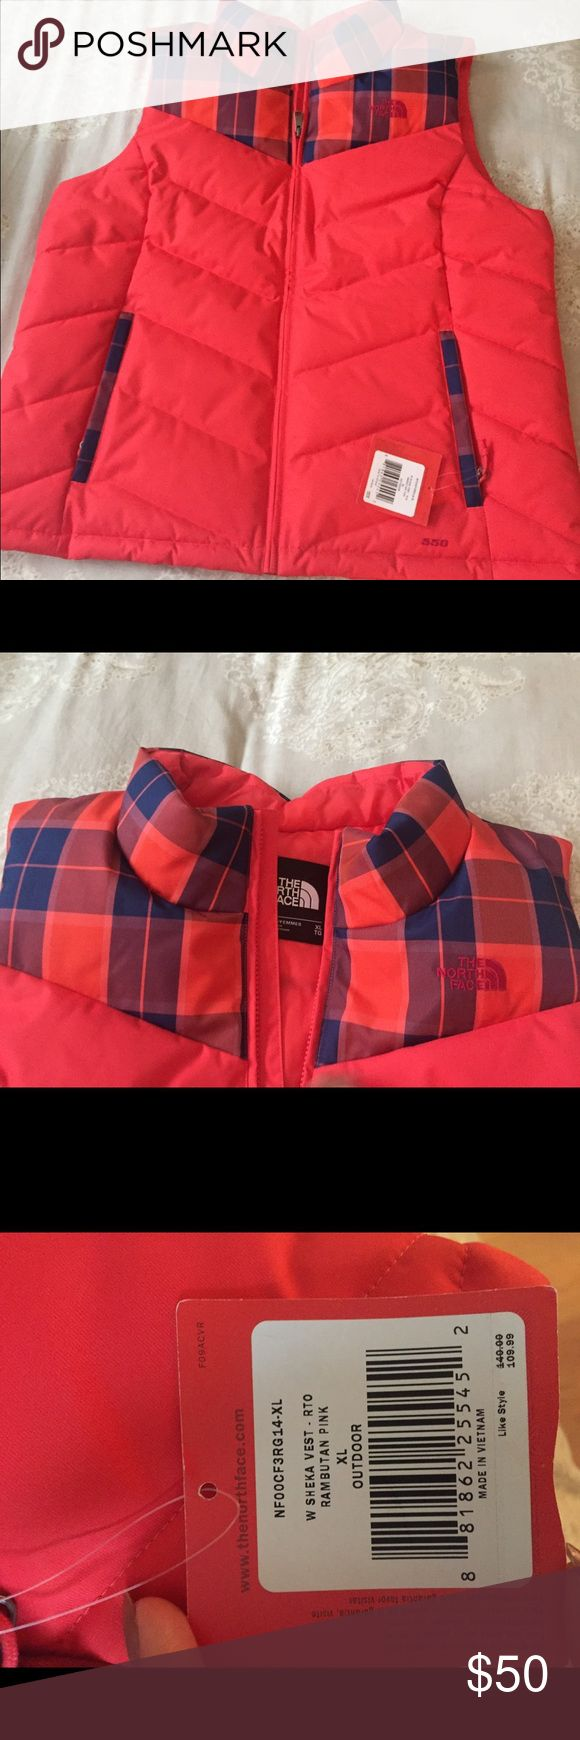 North Face Vest Orange/Peach with Blue plaid at the collar. Brand new. Never worn. North Face Jackets & Coats Vests